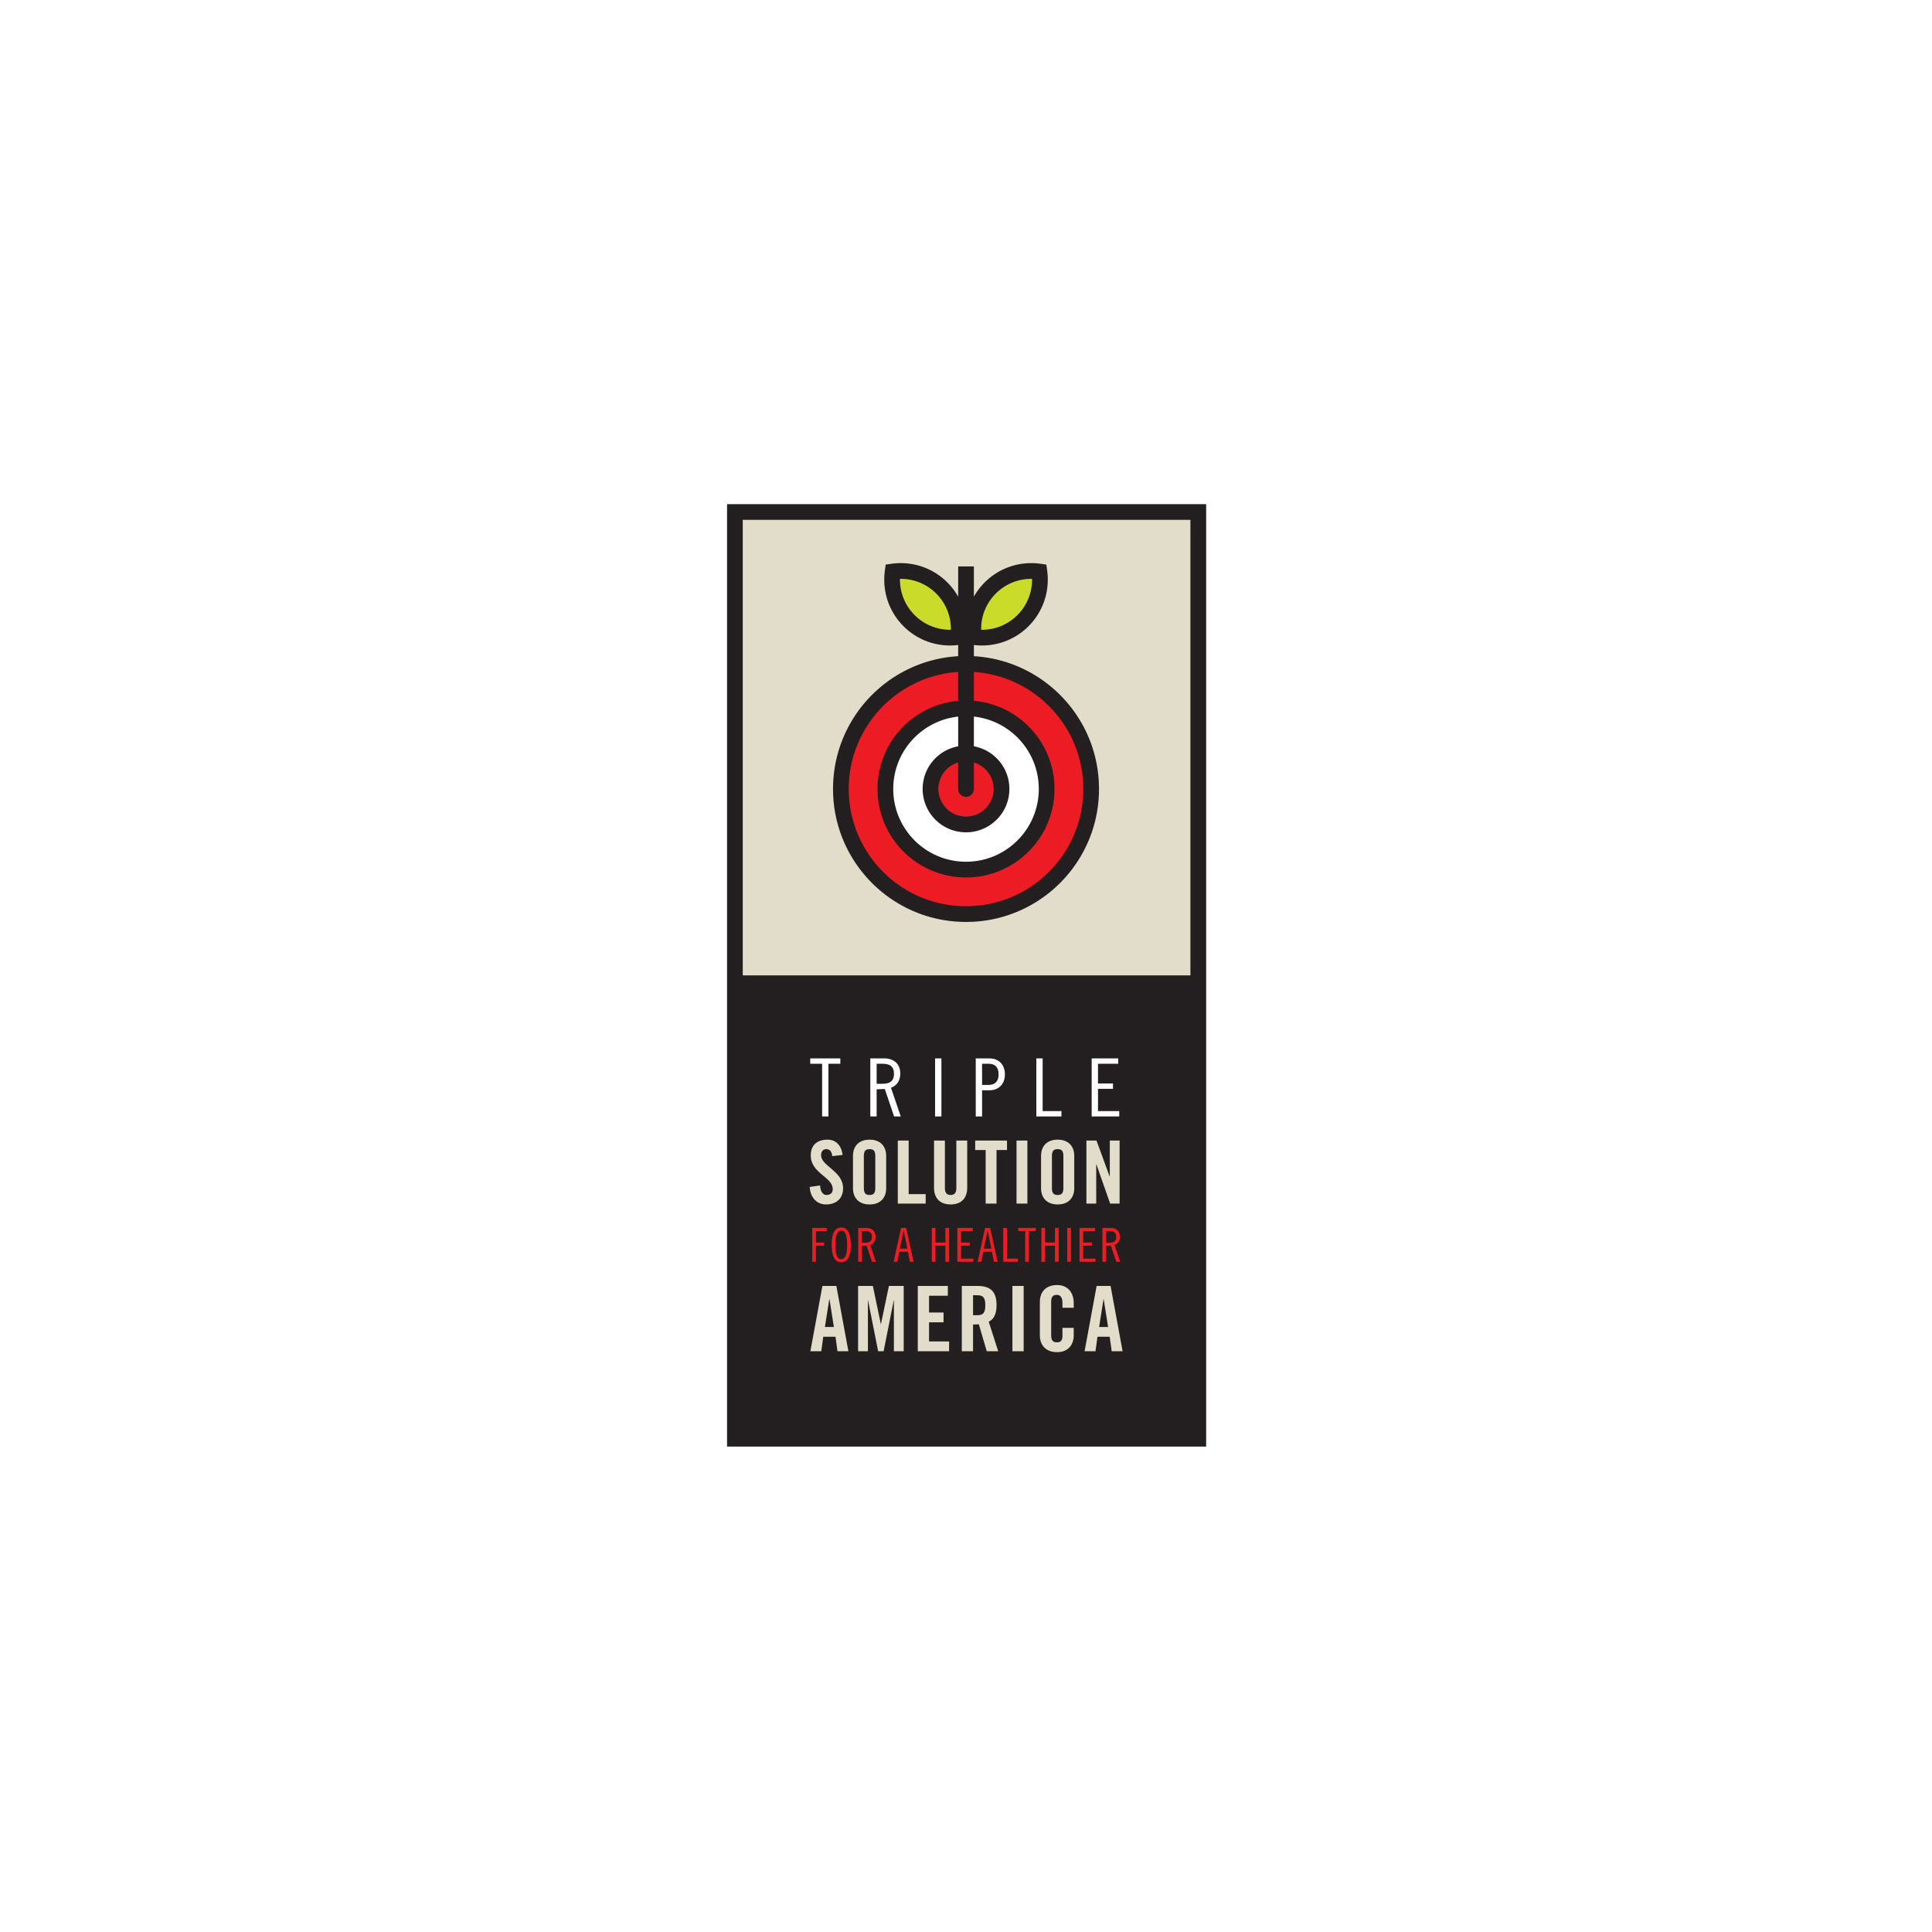 ND-triplesolution-logo.jpg